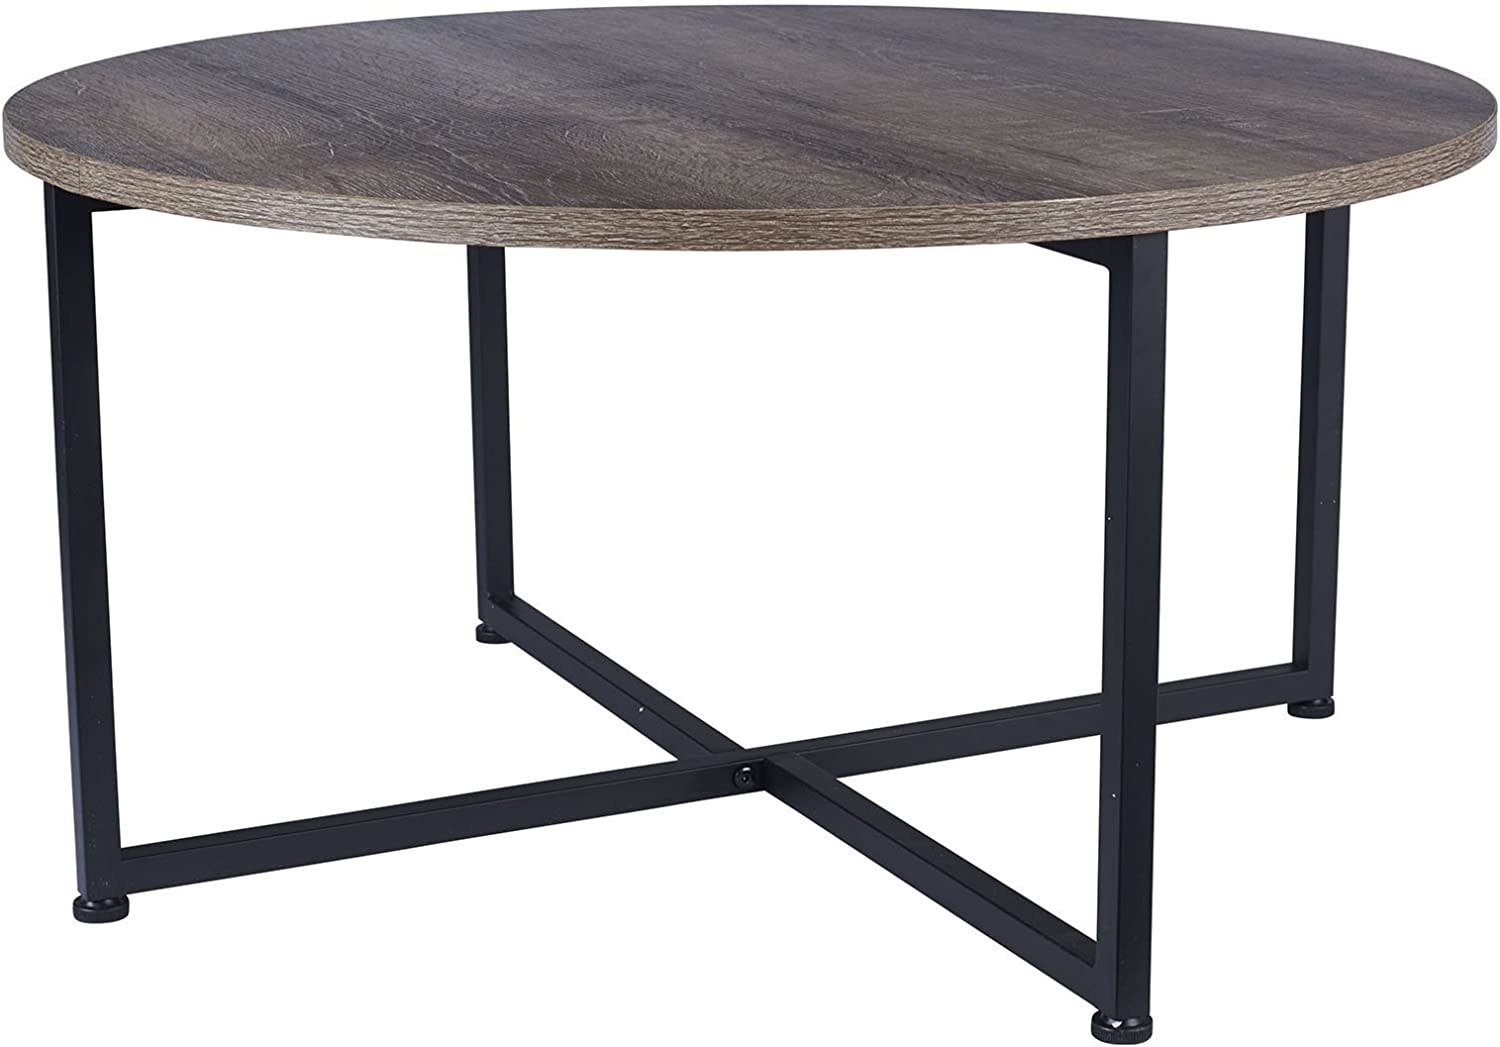 Household Essentials Grey Top Black Frame Ashwood Round Coffee Table: Furniture & Decor